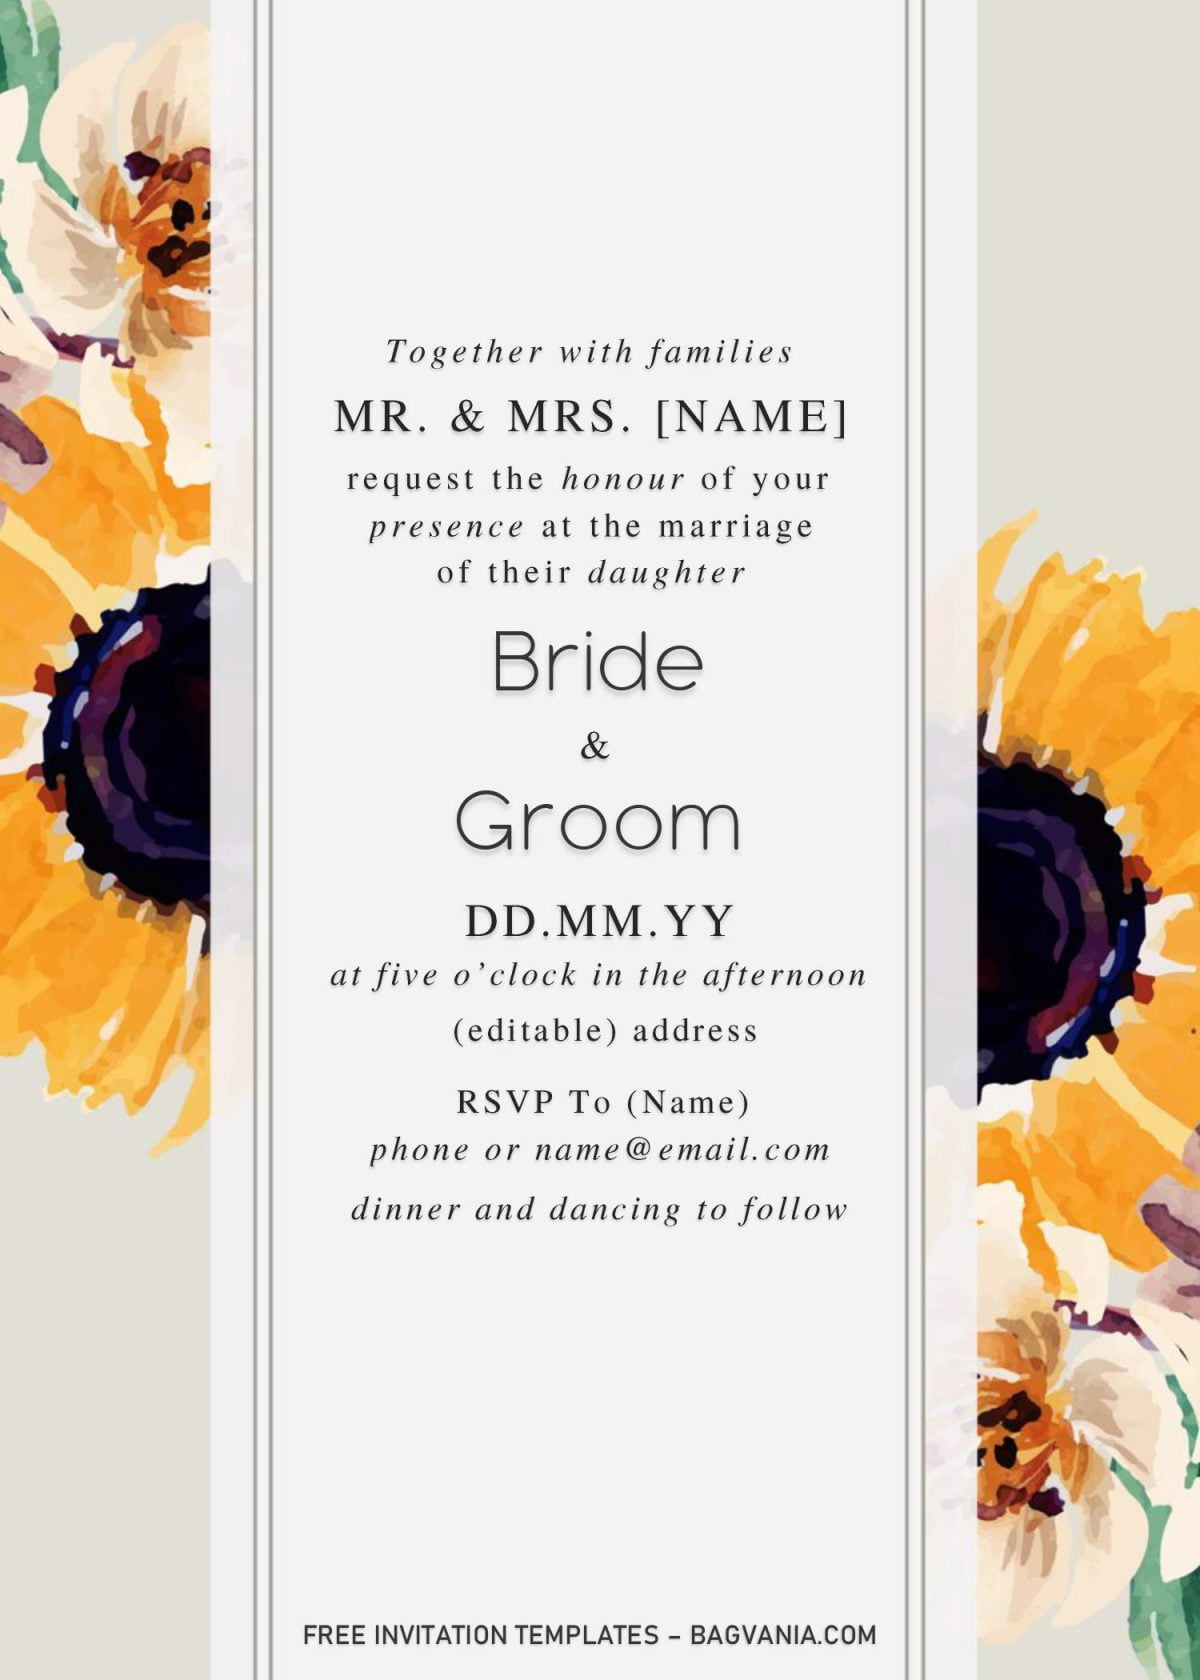 Sunflower Wedding Invitation Templates - Editable With Microsoft Word and has two tone design